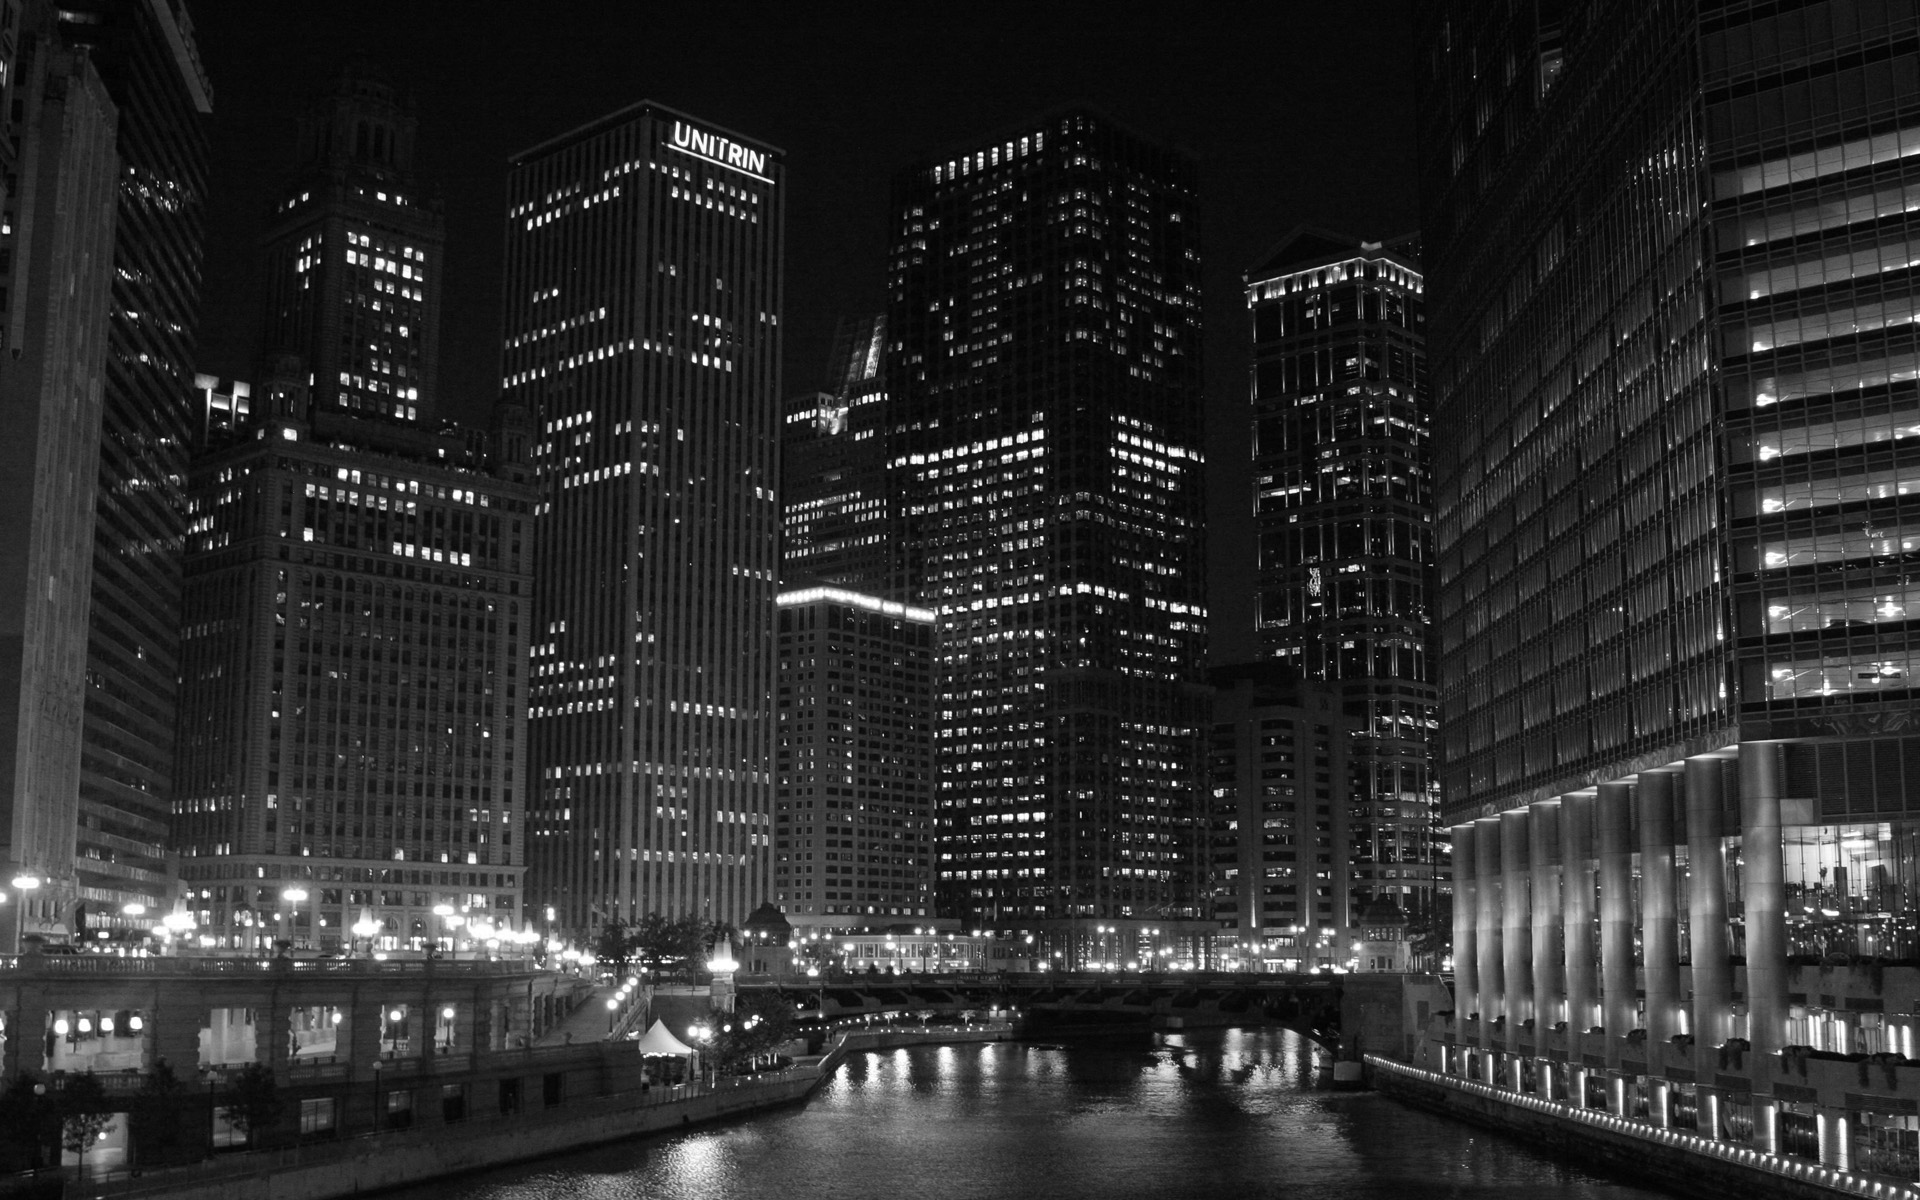 Chicago Black And White Background Hd Wallpaper Garreco Dental